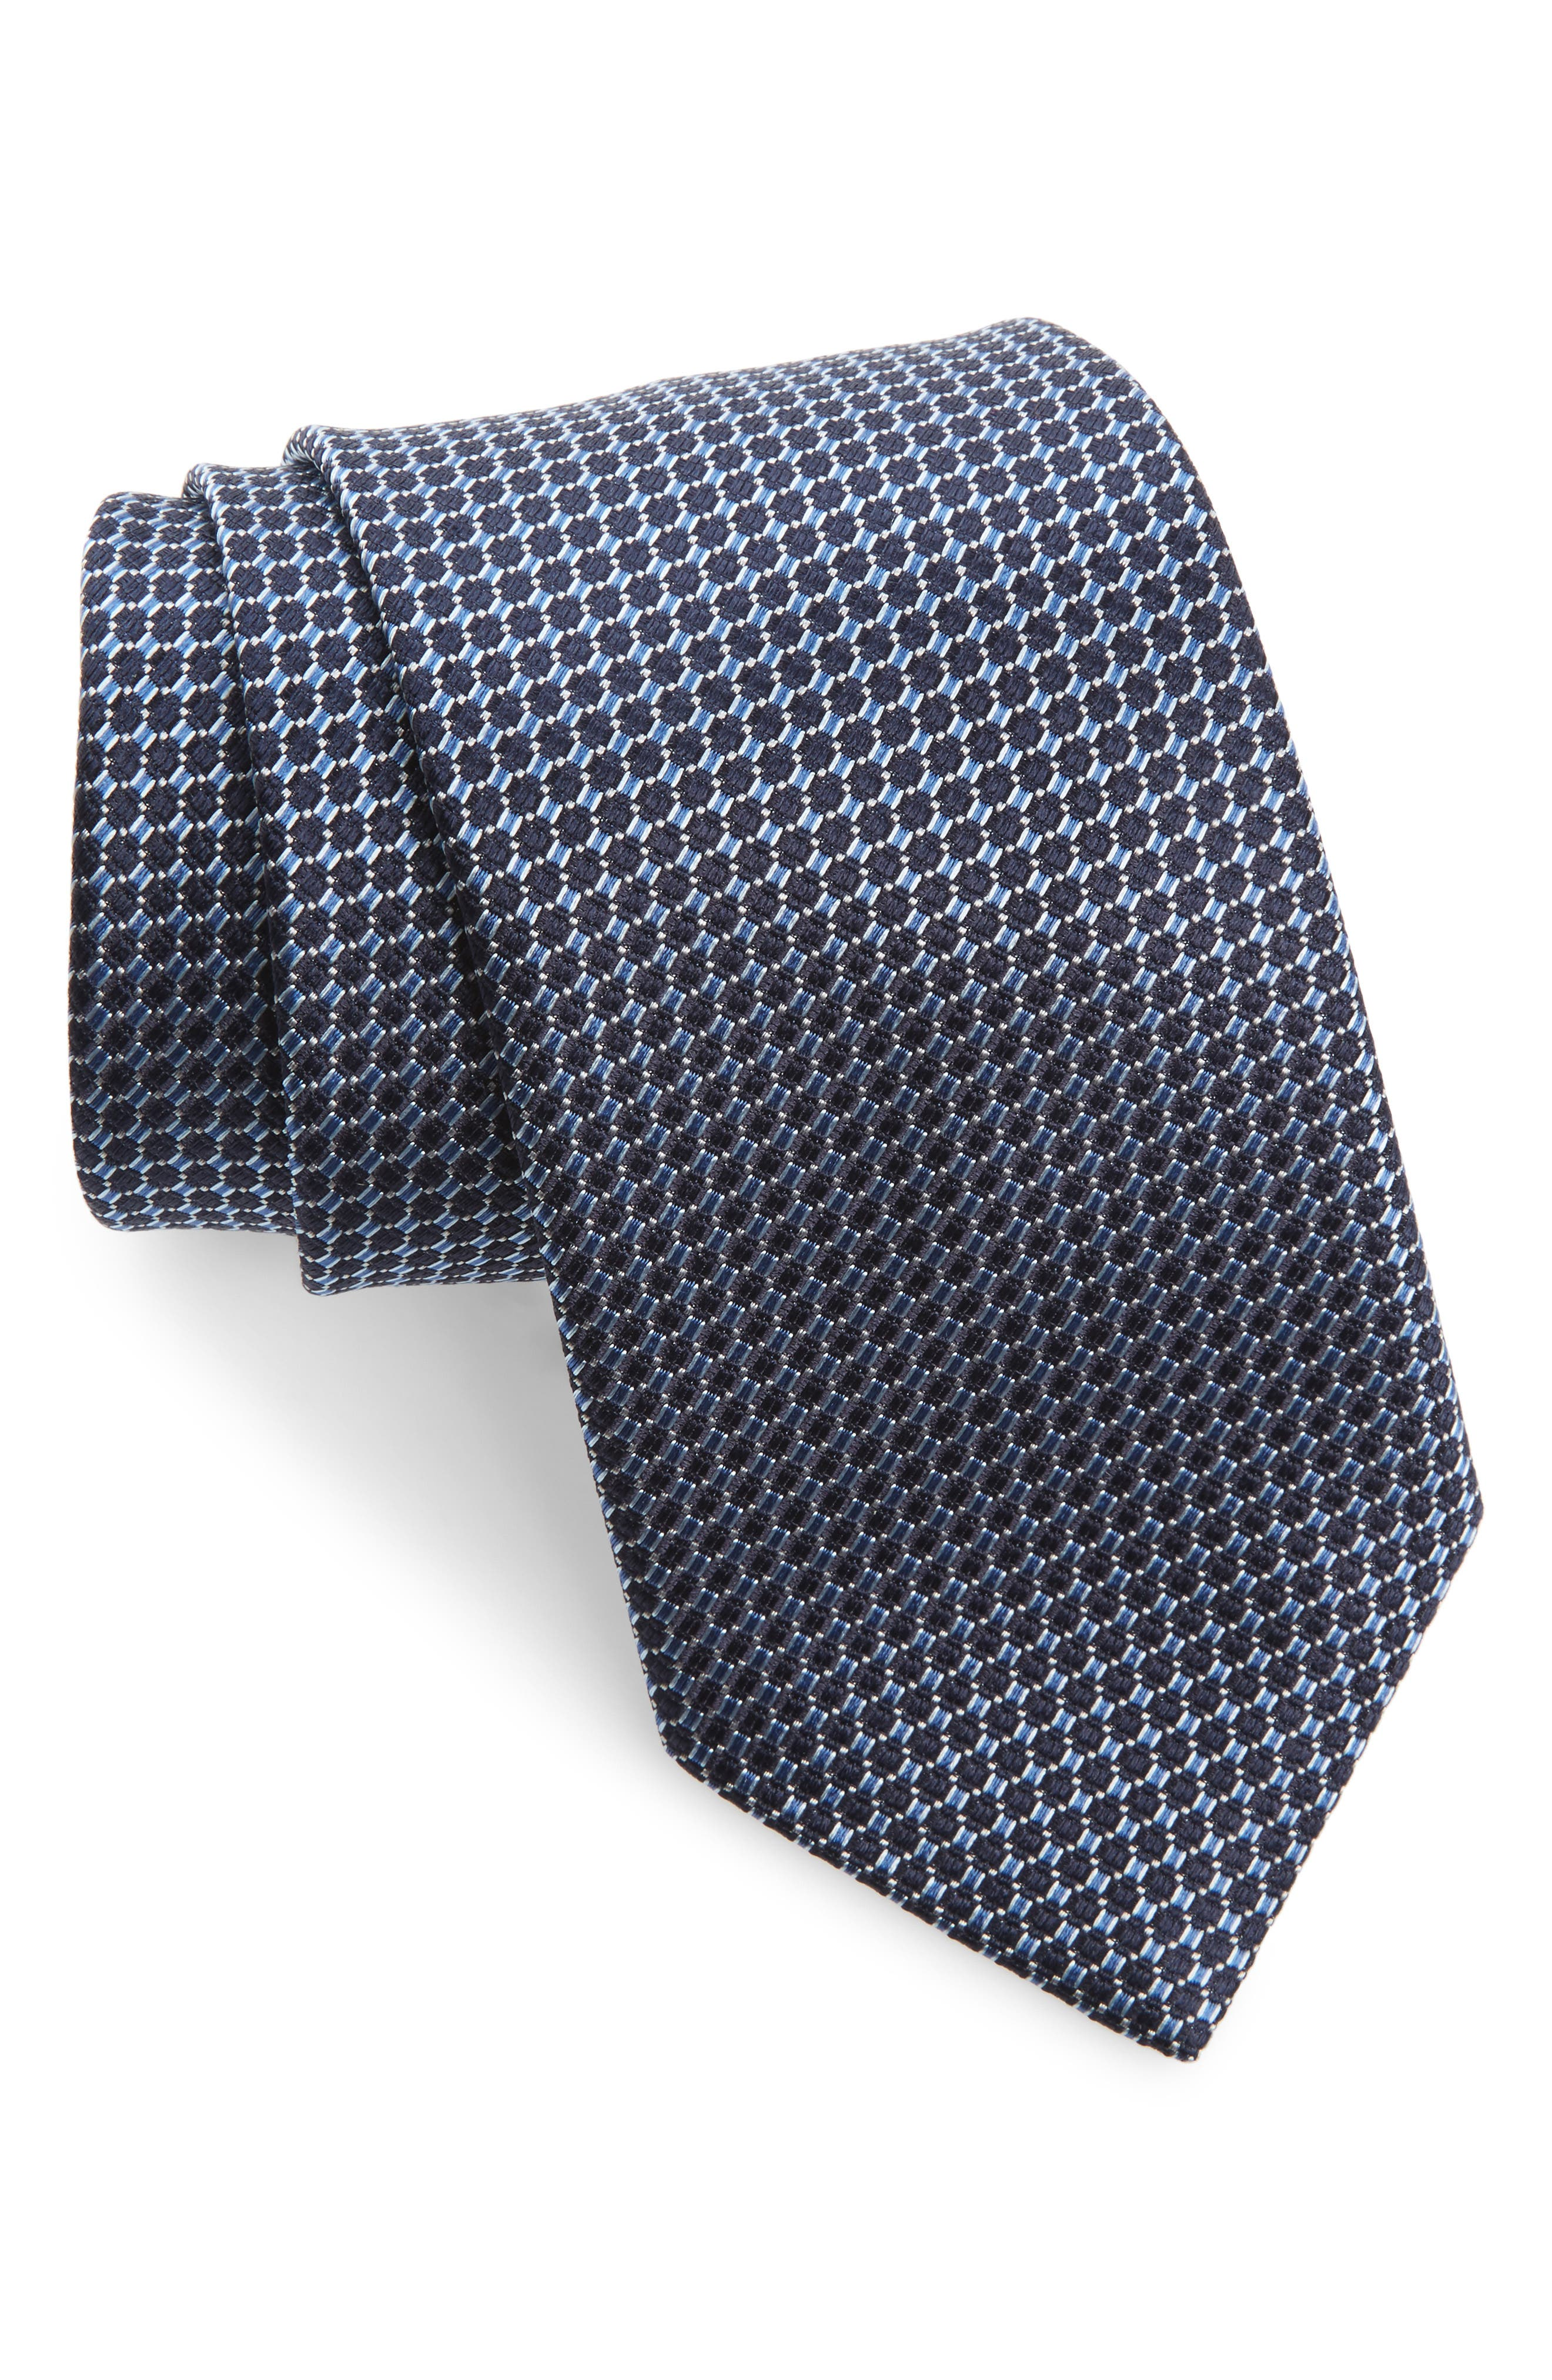 Solid Silk Tie,                             Main thumbnail 1, color,                             467